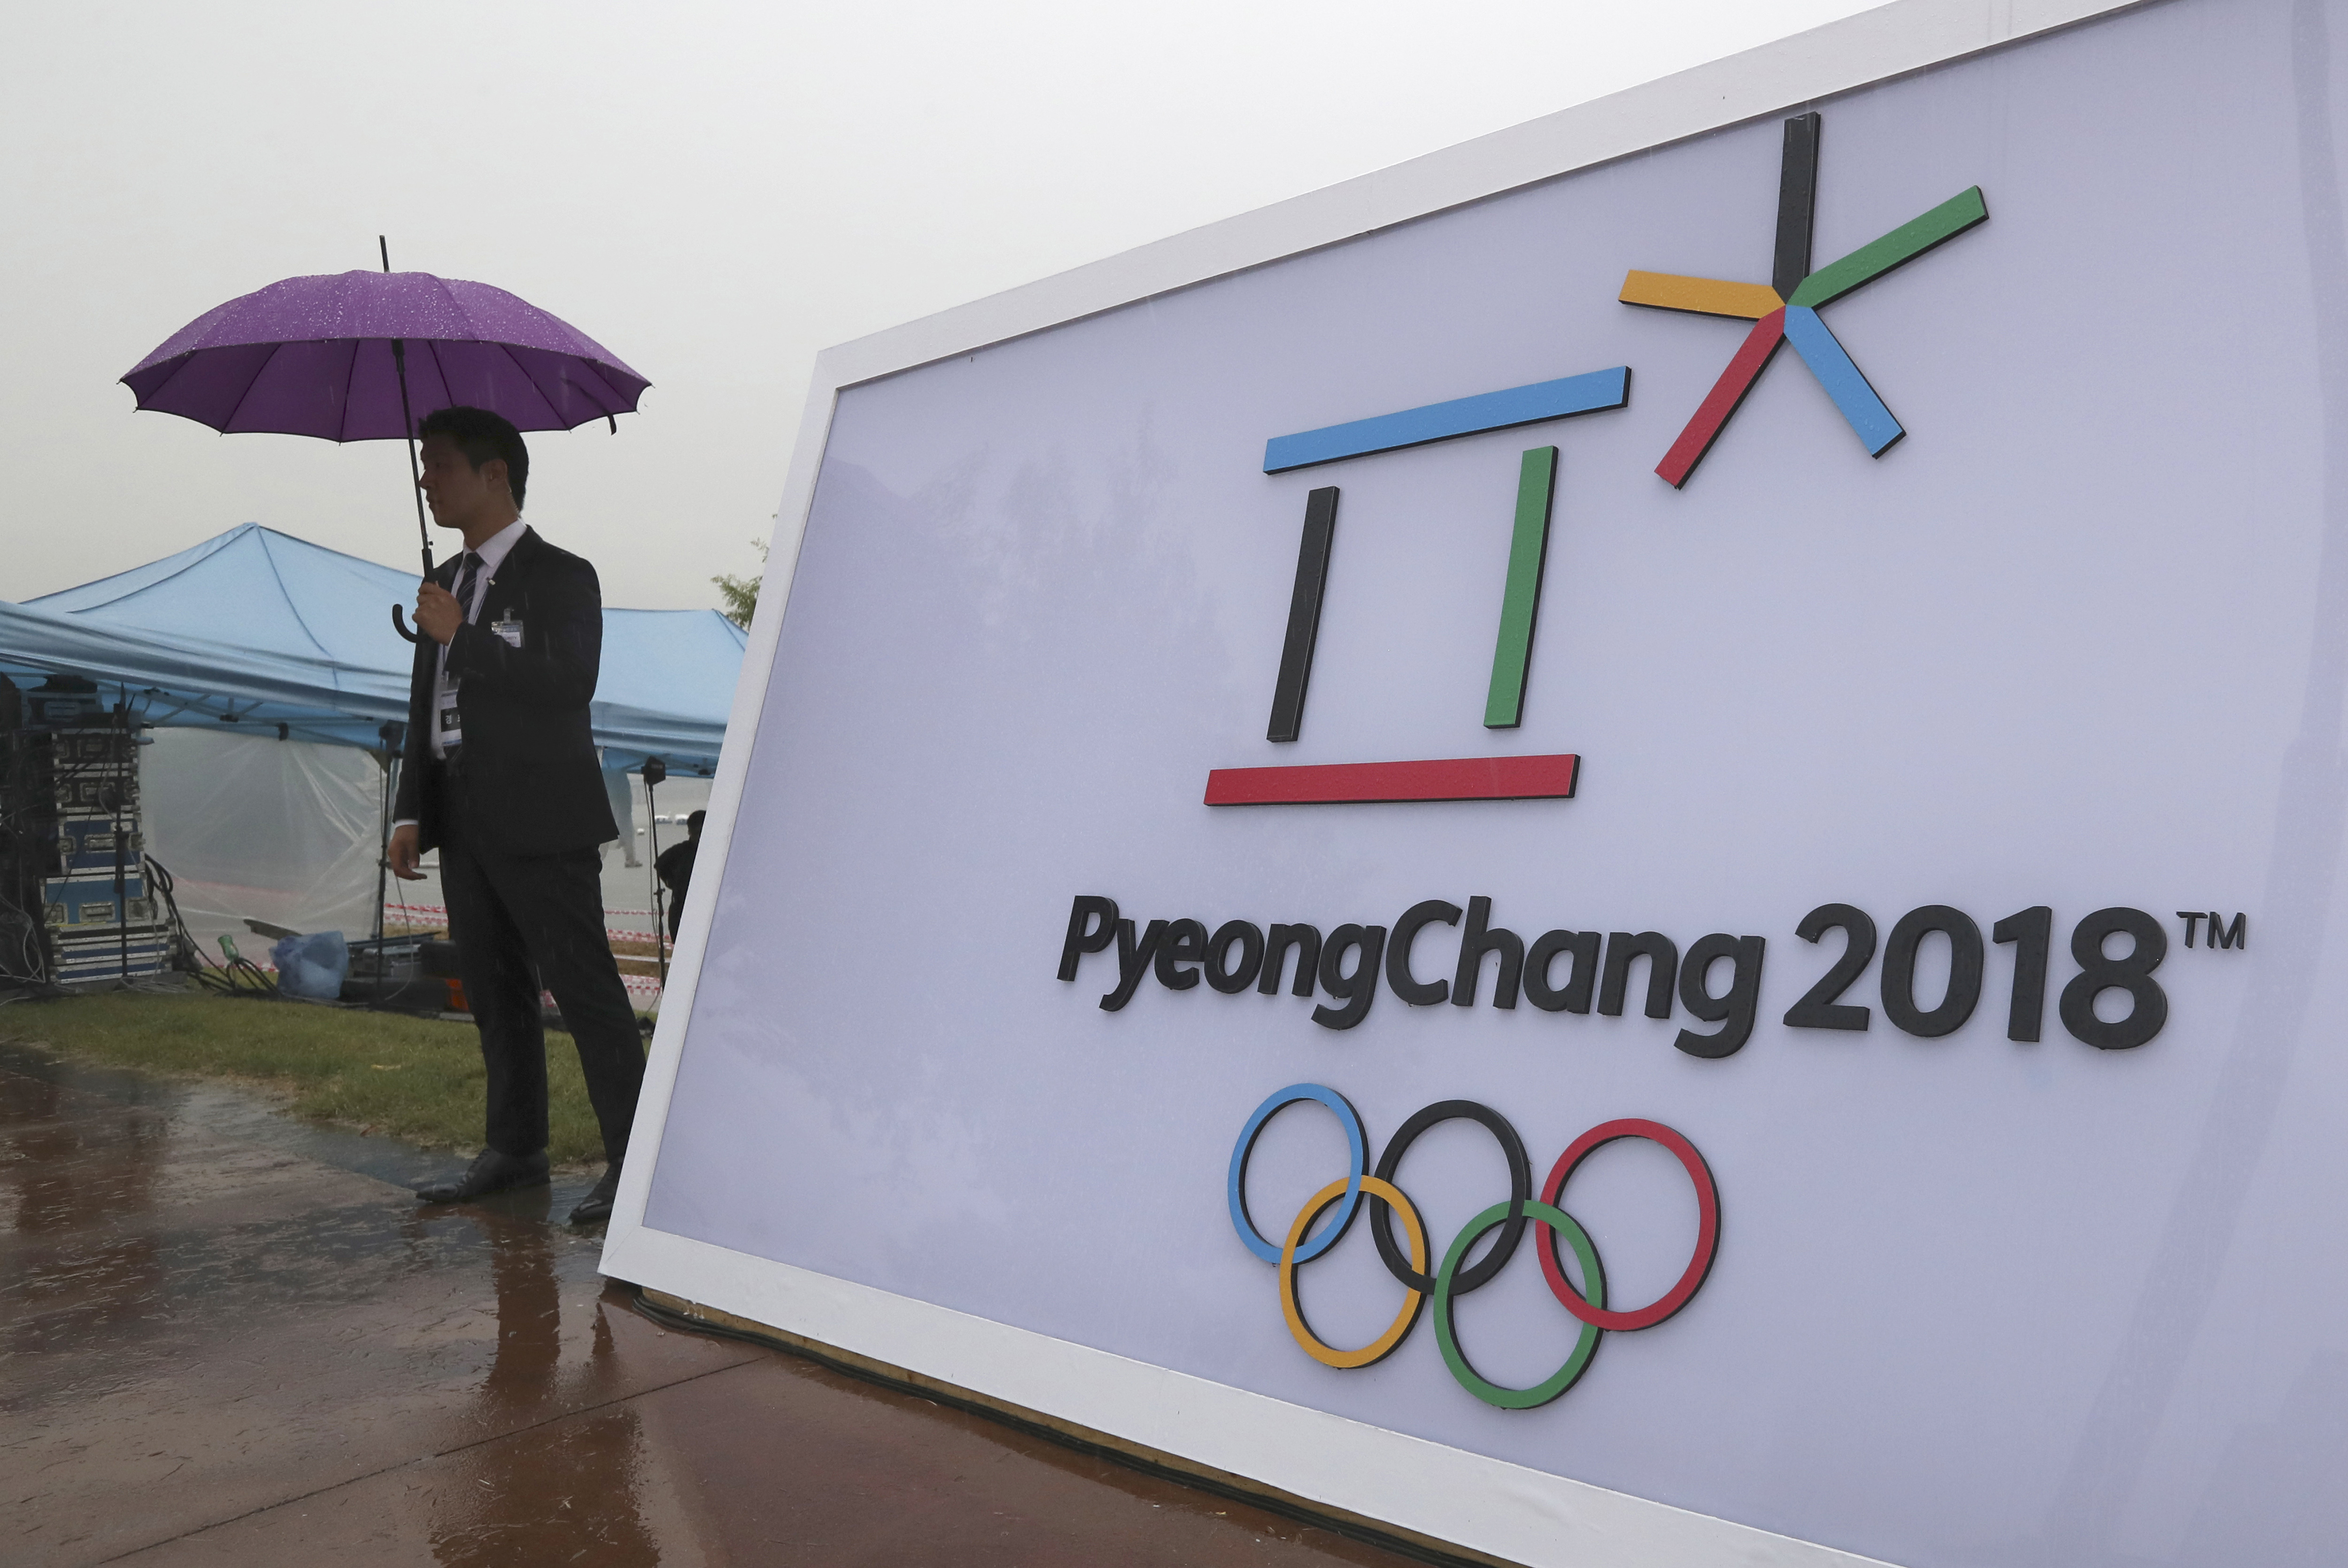 FILE - In this Sept. 27, 2016 file photo, security personnel stands by a logo of the 2018 PyeongChang Olympic Winter Games before an event to mark the start of the 500-day countdown in Seoul, South Korea. The head of analysis for Gracenote, a US-based spo